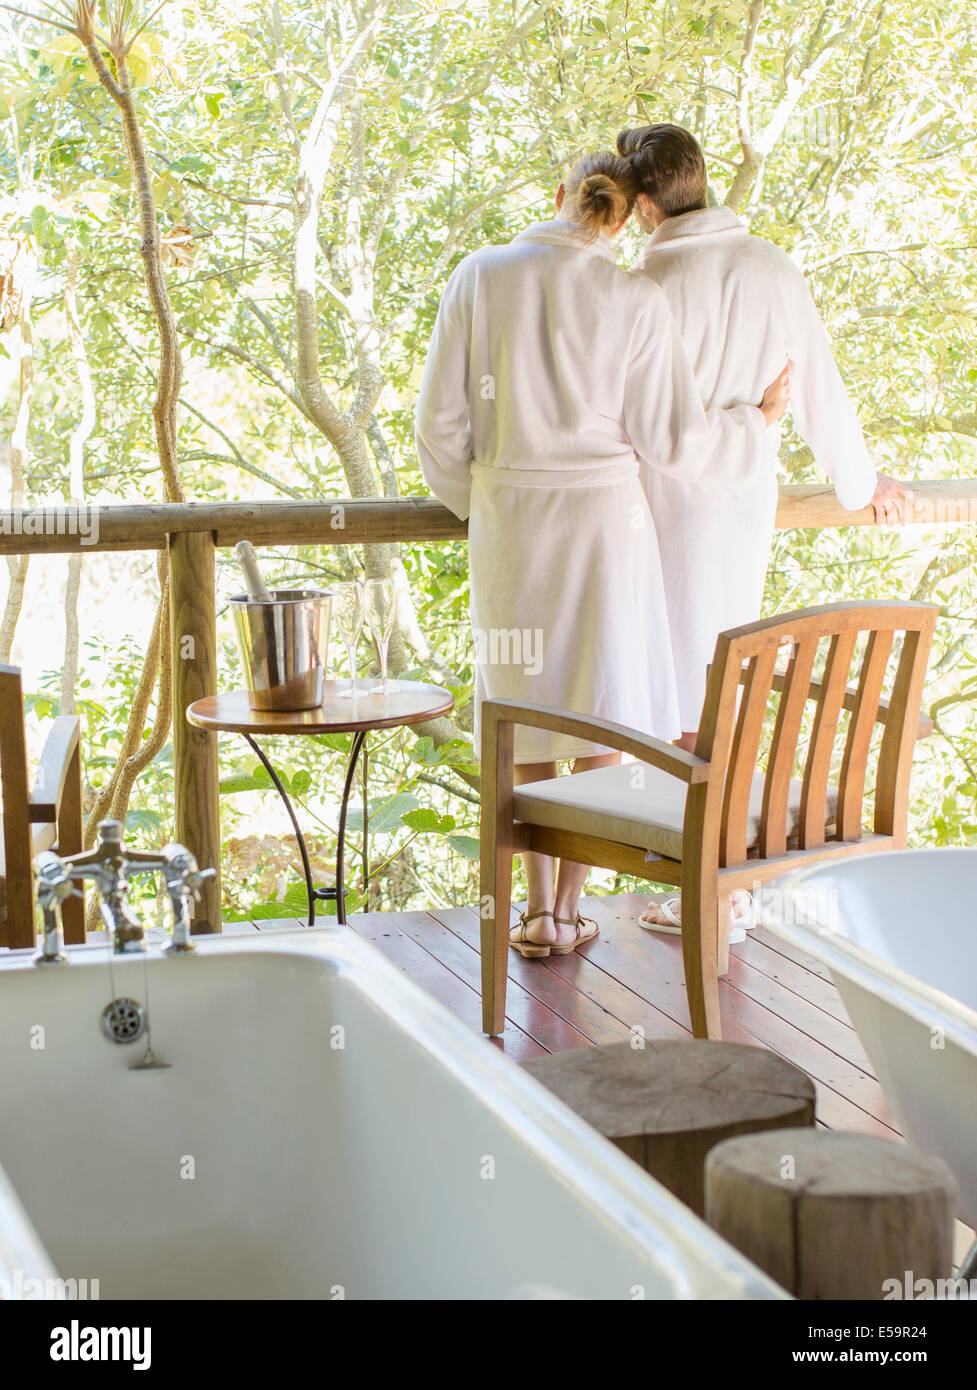 Couple relaxing together in spa - Stock Image